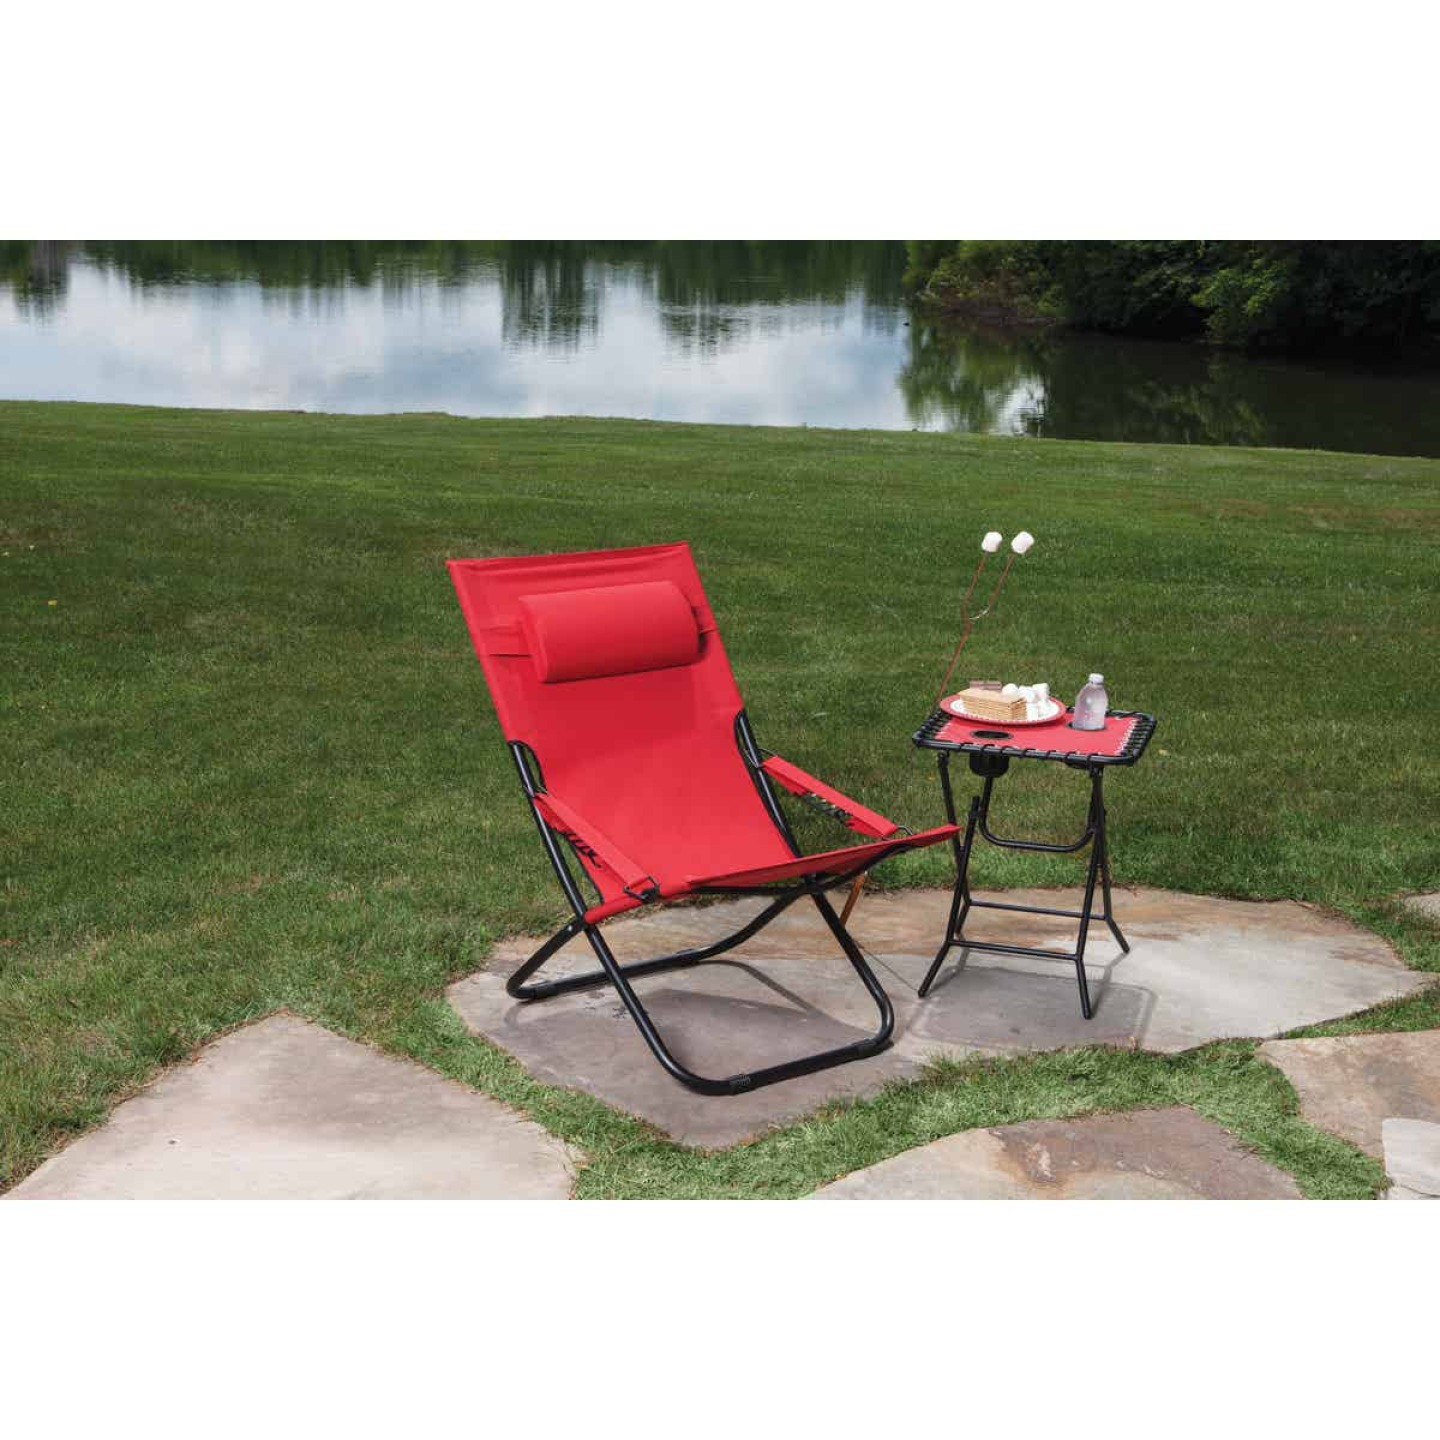 Outdoor Expressions Folding Red Hammock Chair with Headrest Image 3